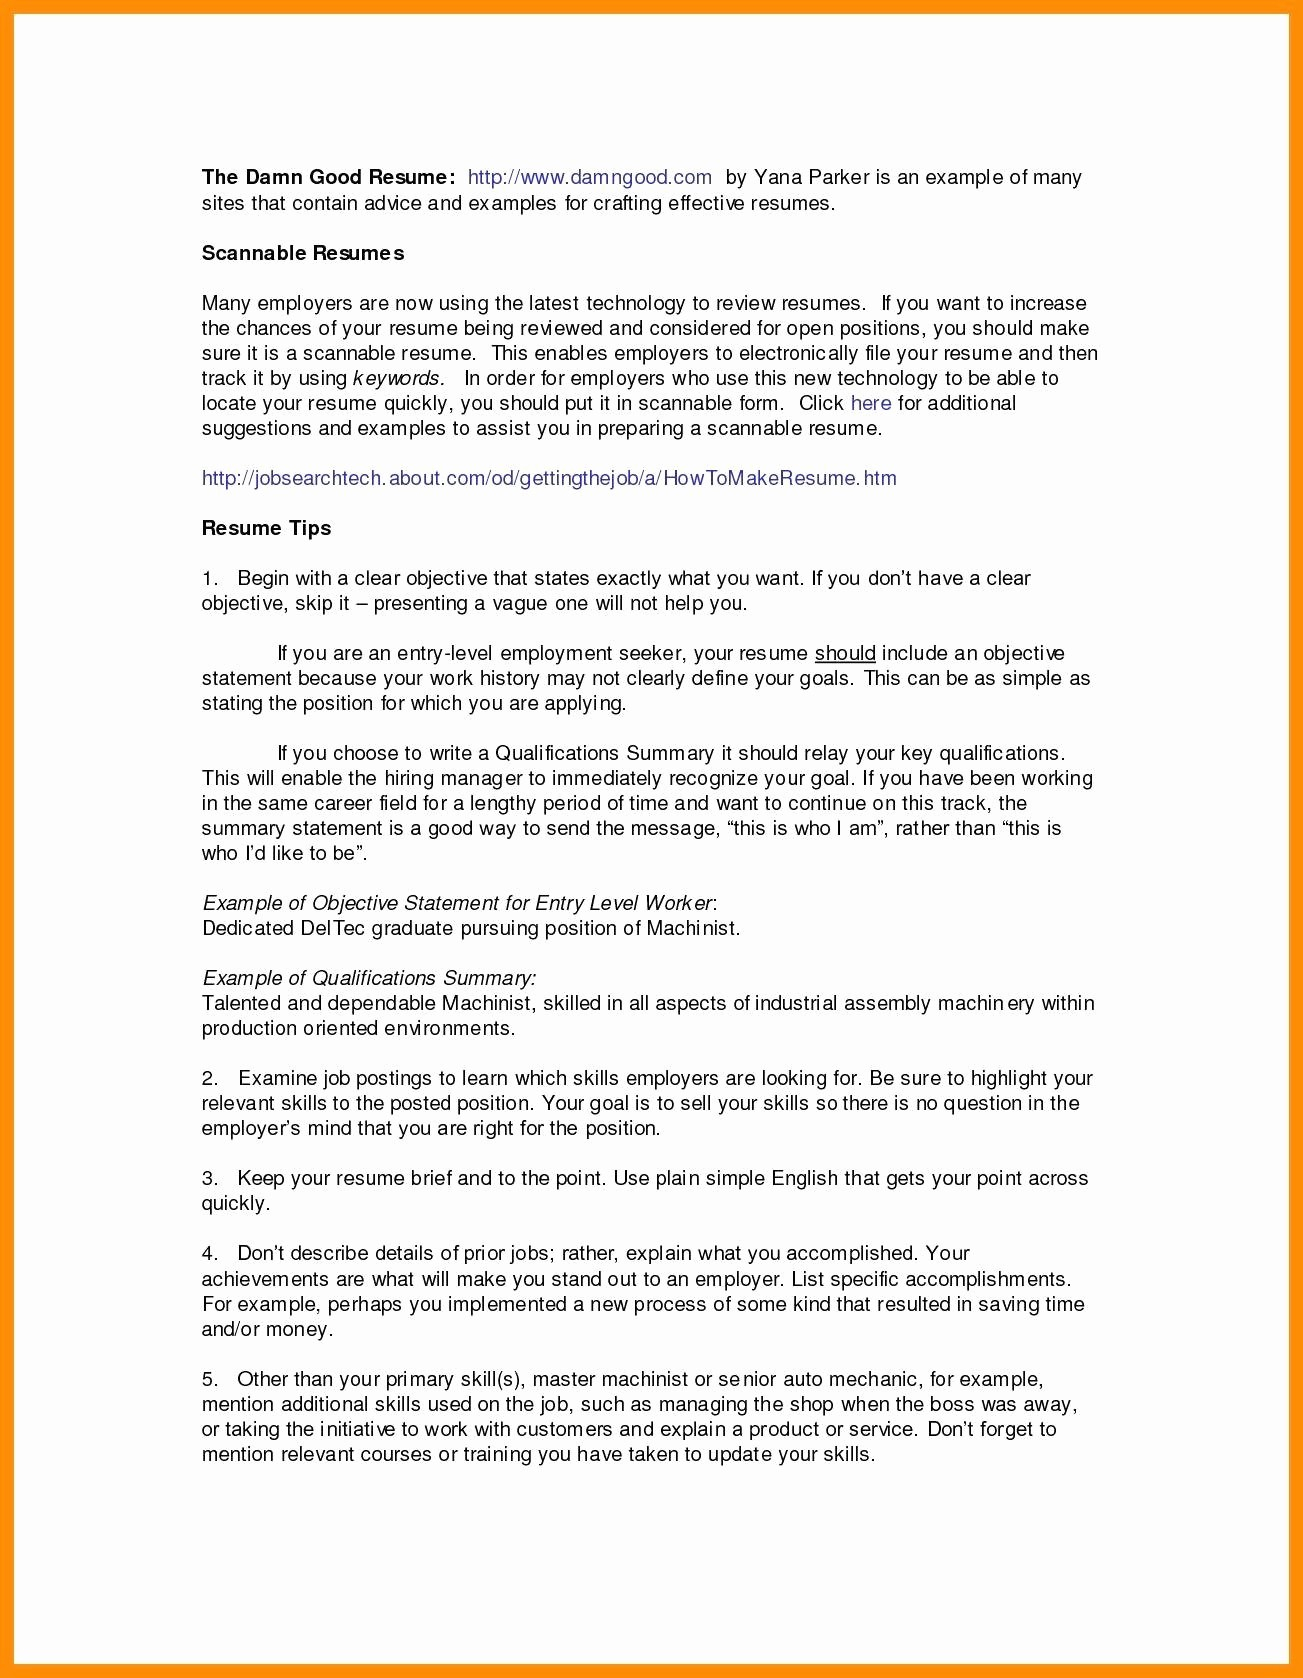 Resume for Law School Application Template - Sample Resume Columbia Law New 55 Unique Stock Law School Resume